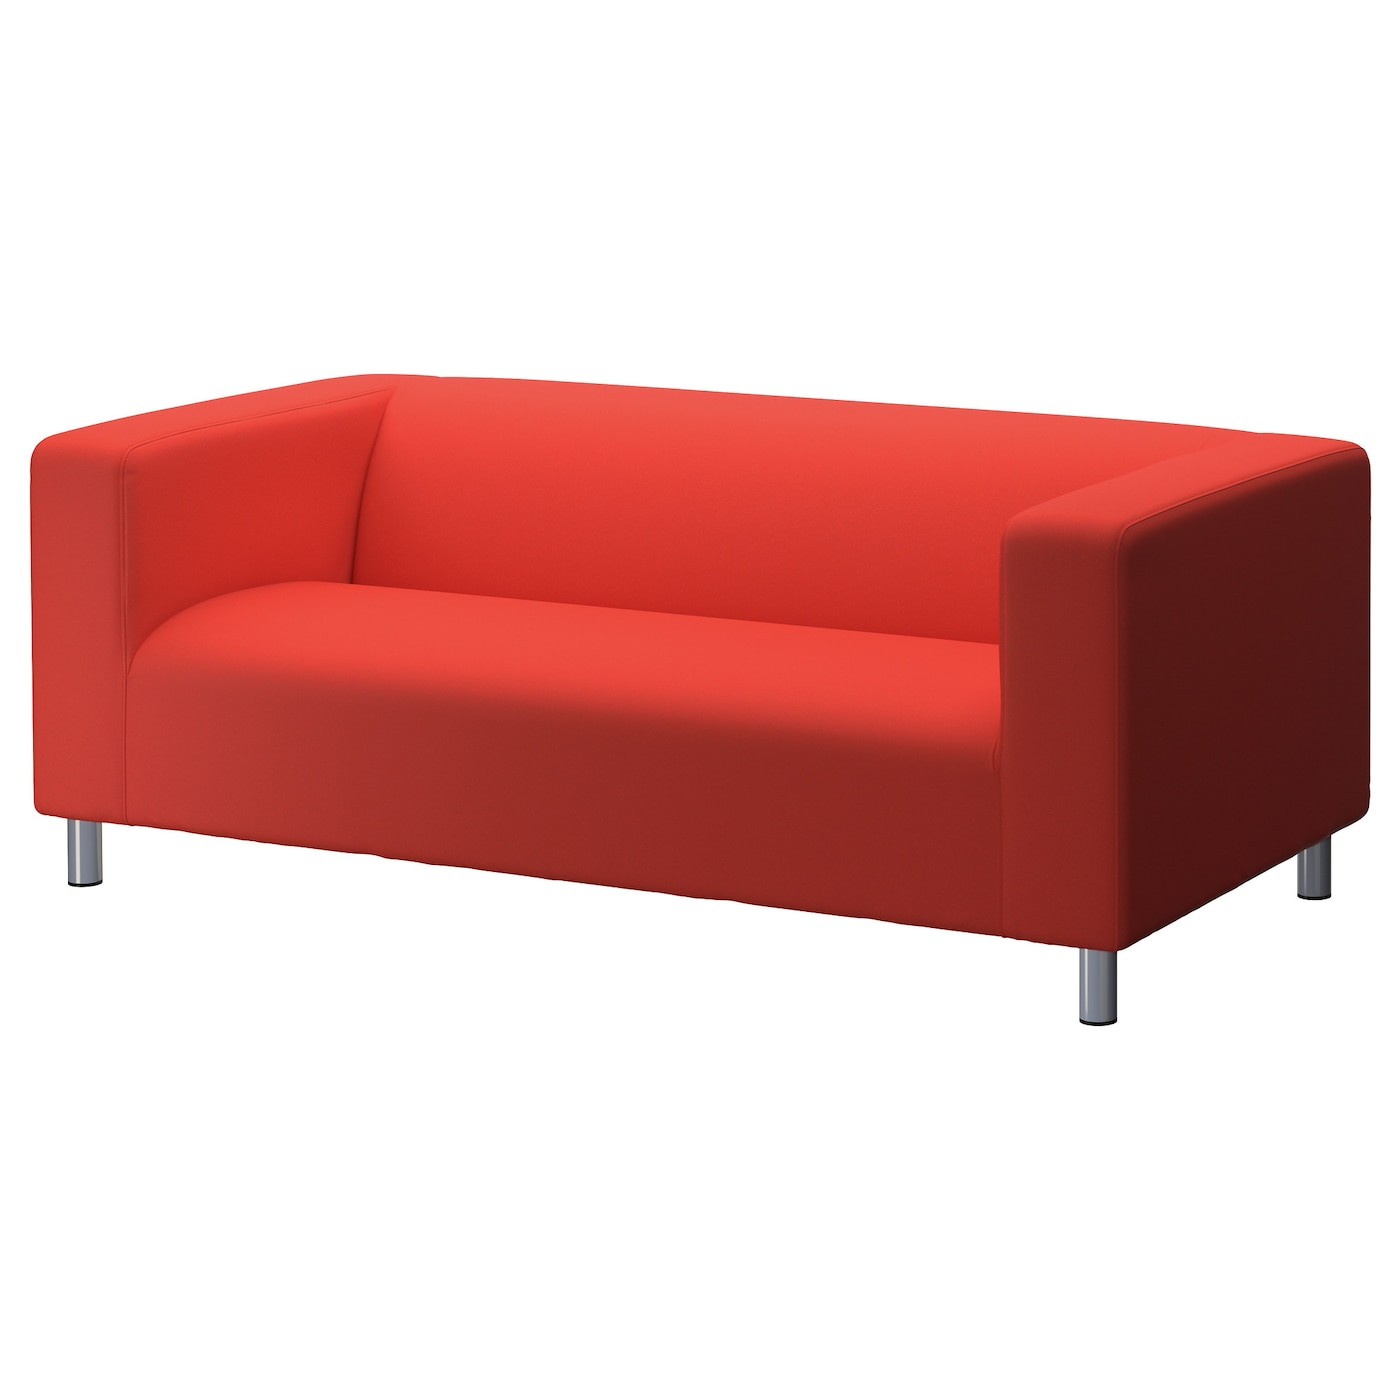 Klippan two seat sofa flackarp red orange ikea for Better by design couch